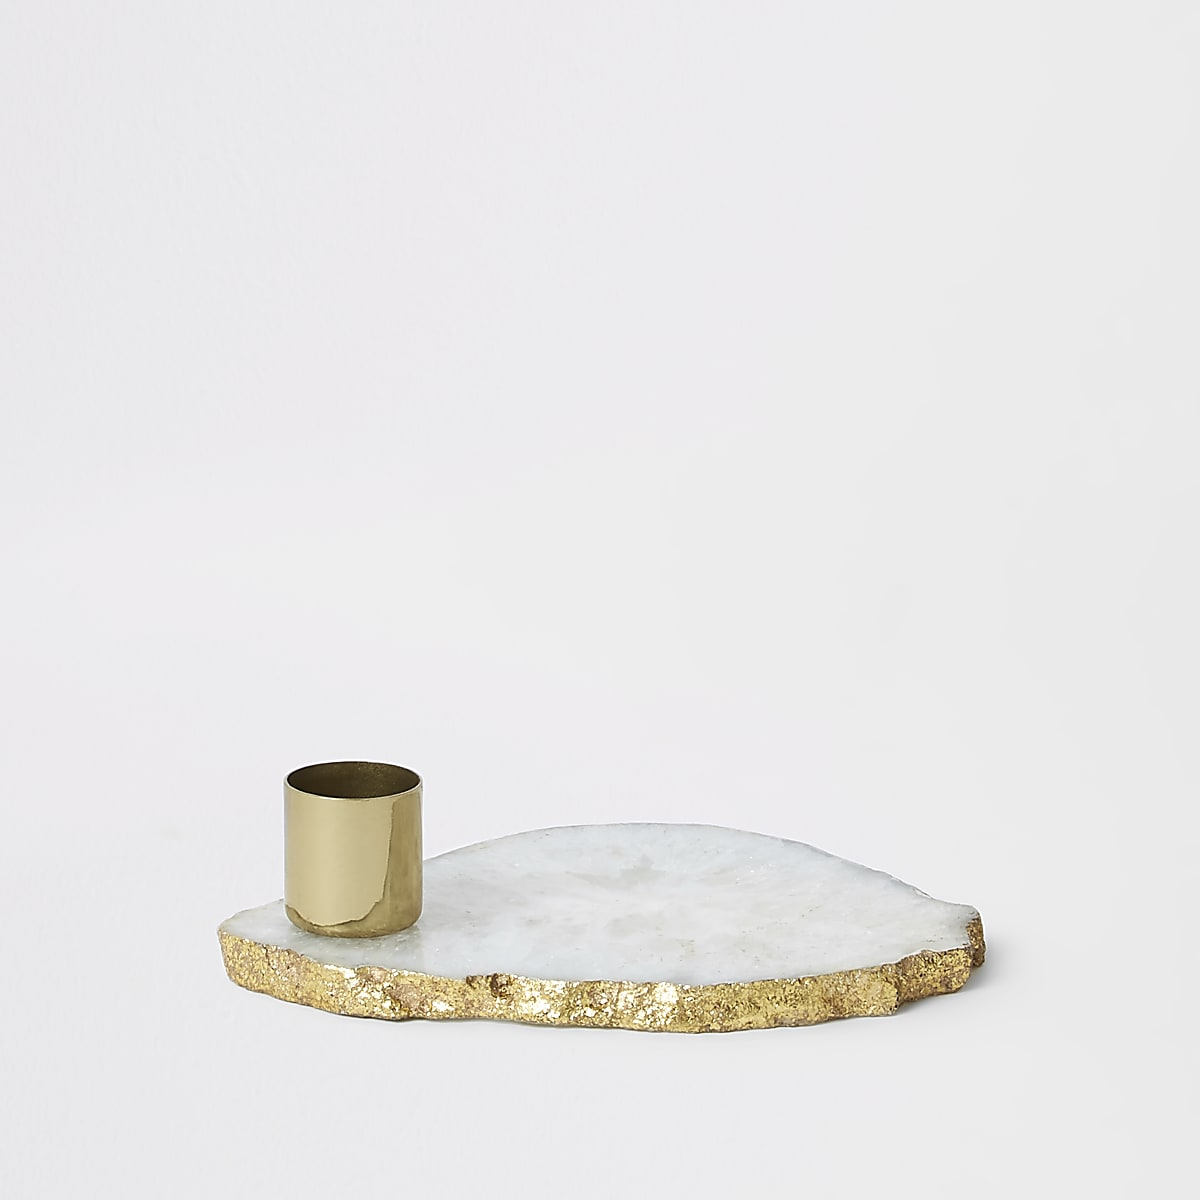 Ivory agate candle holder